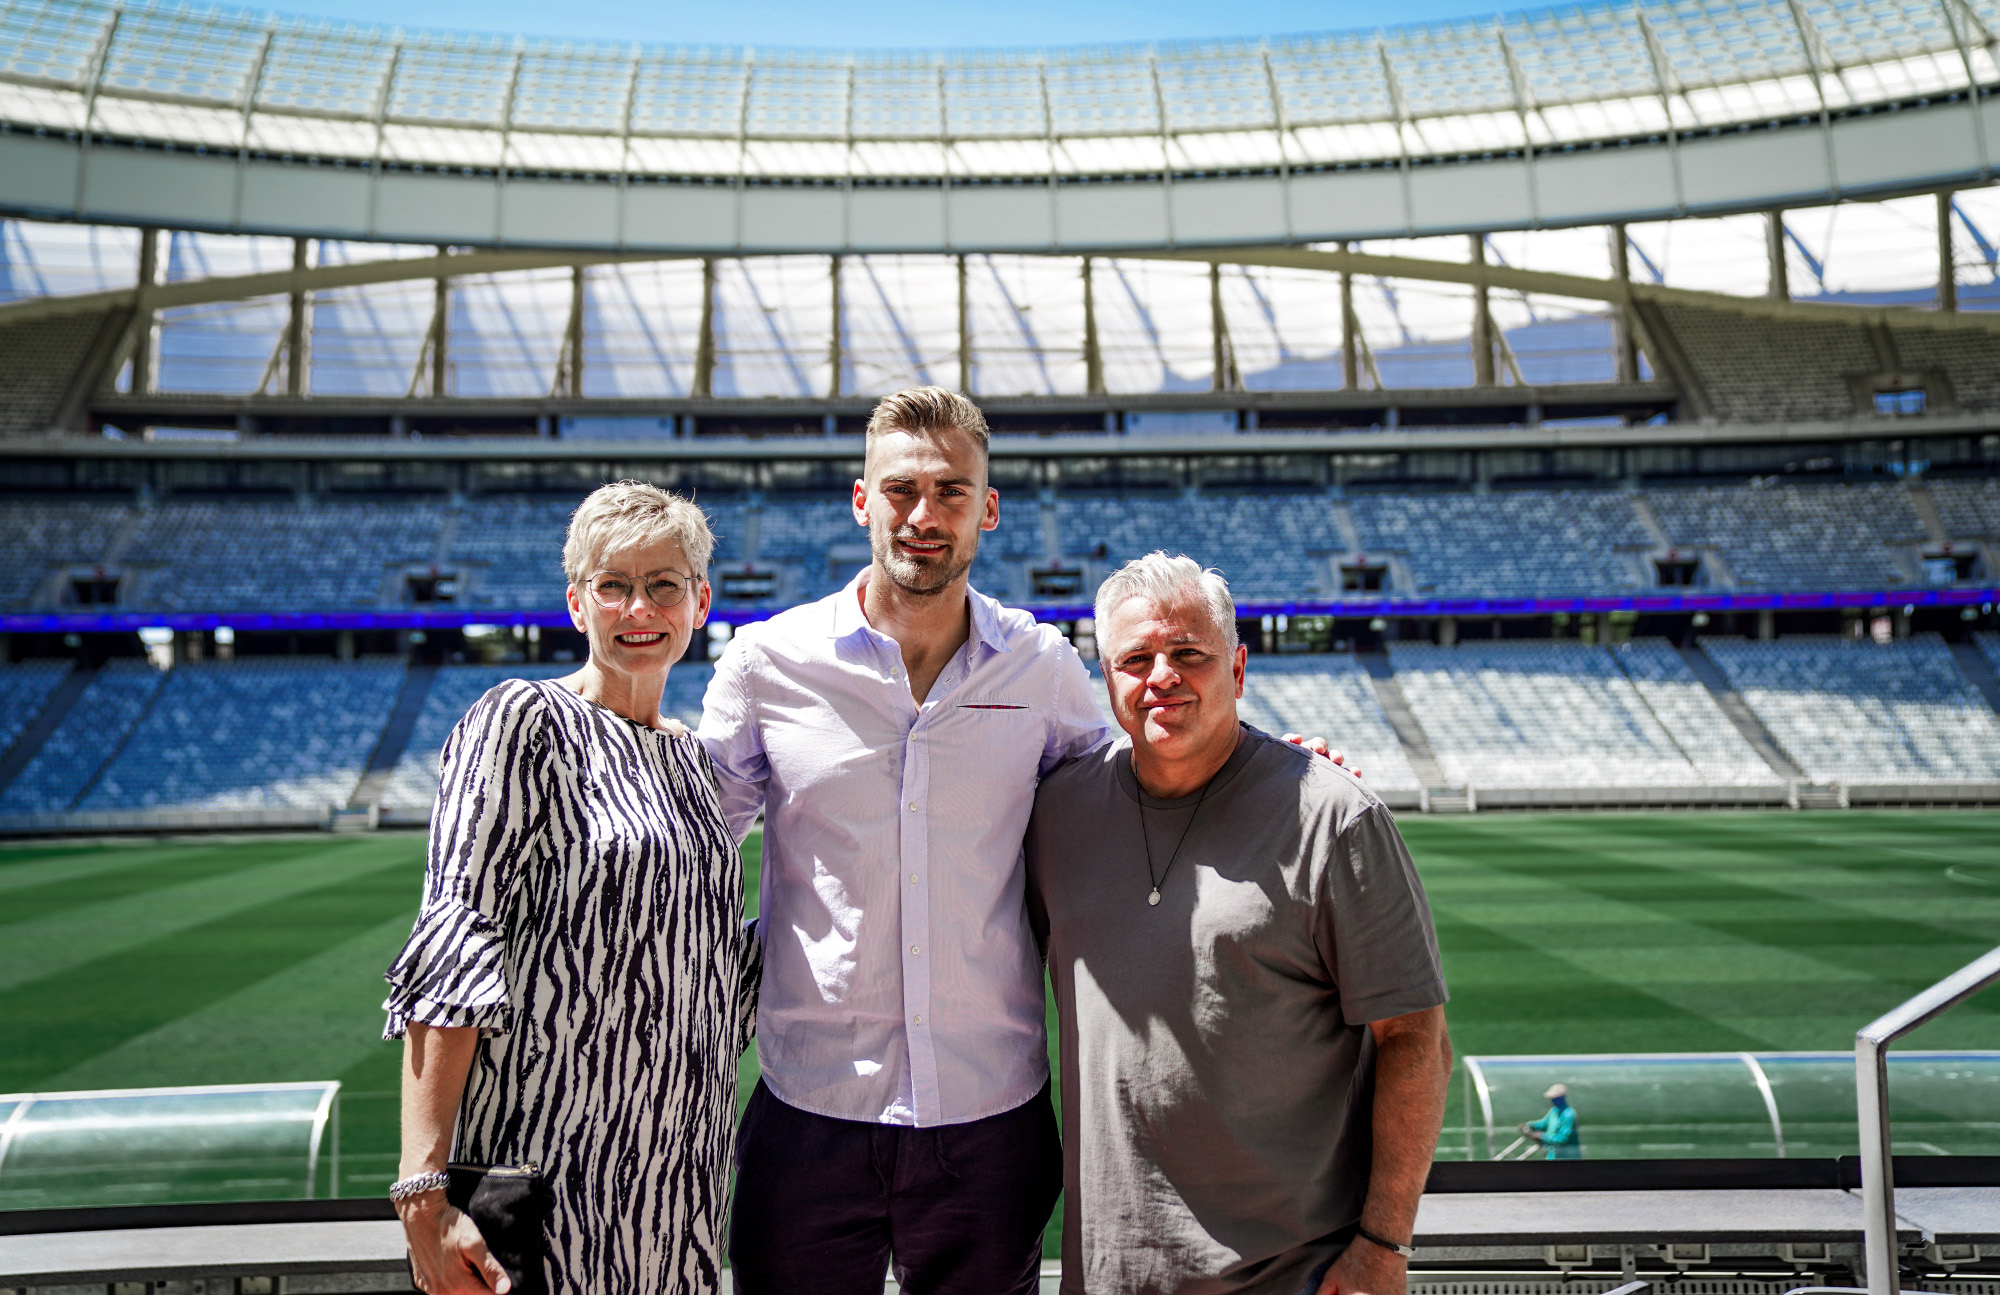 Peter Leeuwenburgh verlengt contract bij Cape Town City tot 2023